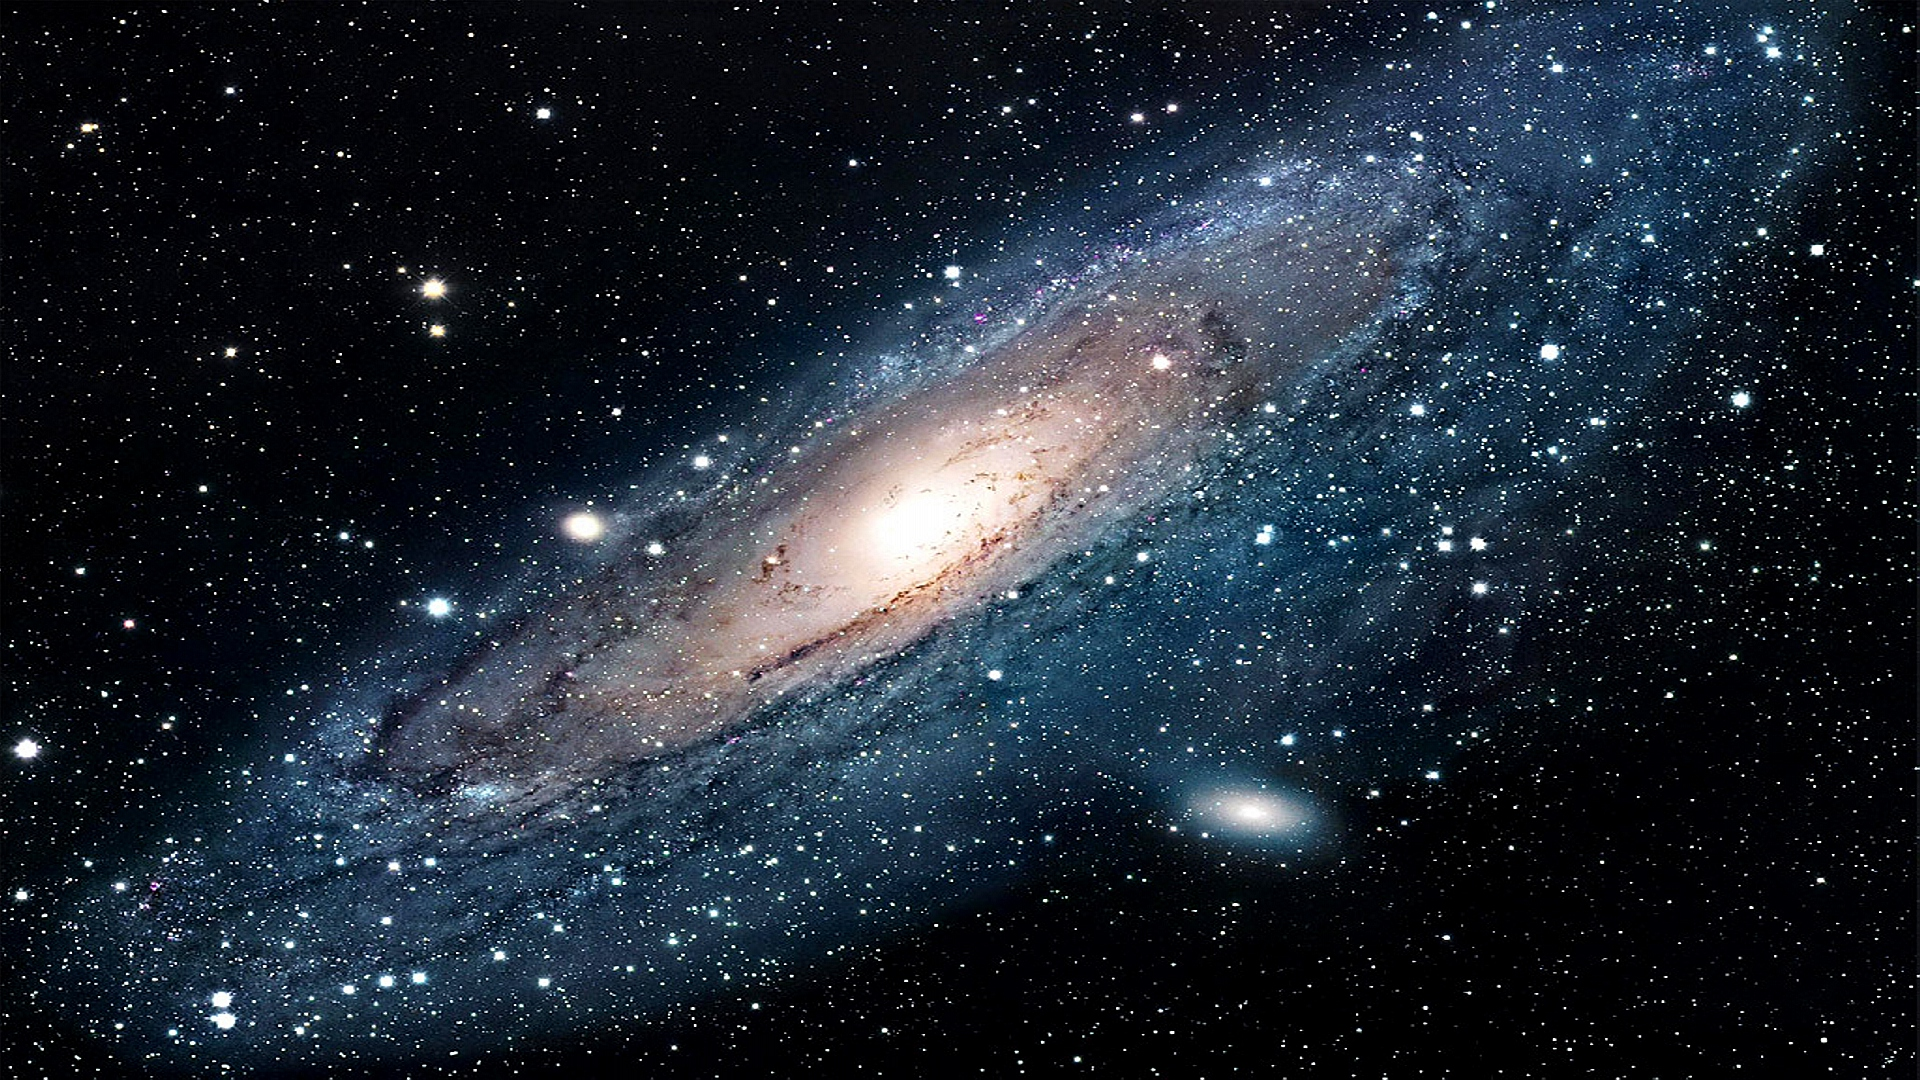 space galaxy hd walppapers cool desktop backgrounds widescreen 1920x1080